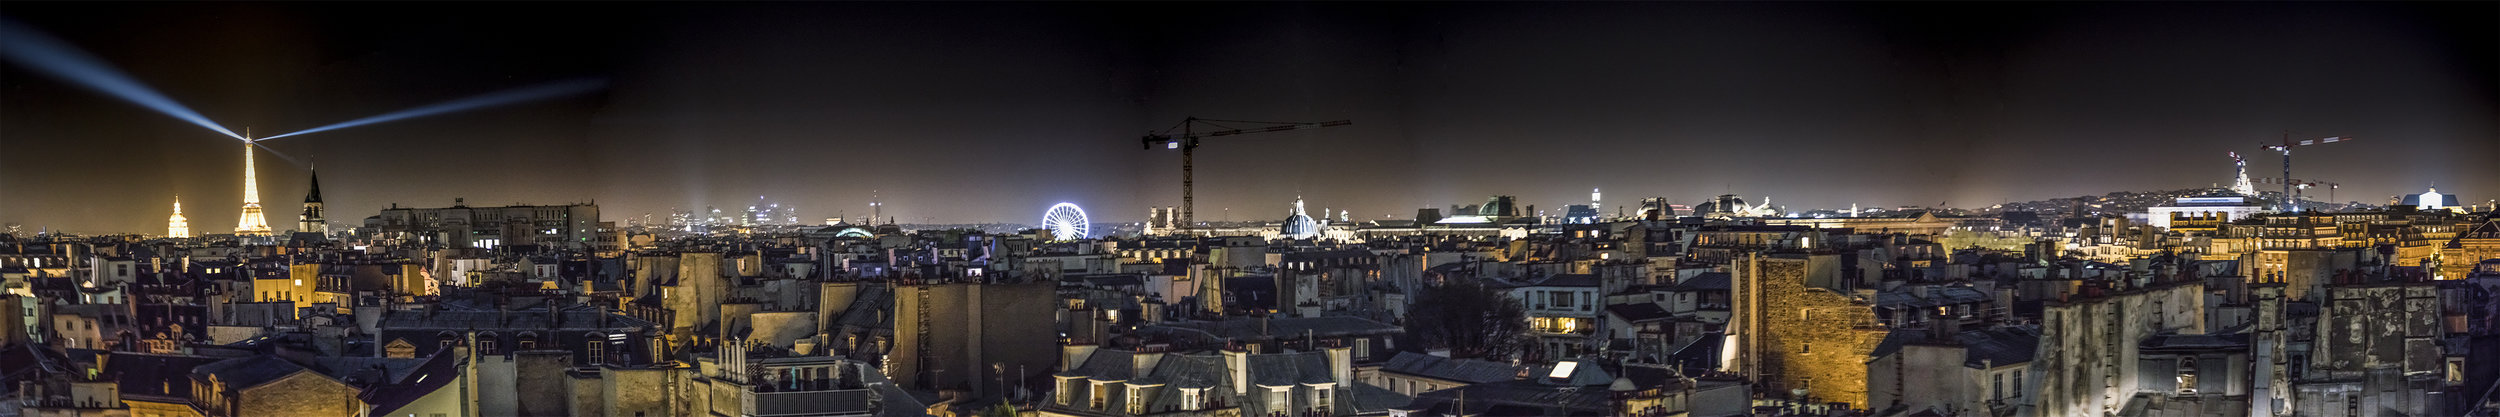 Paris from the Rooftops 2 L211217pan.jpg